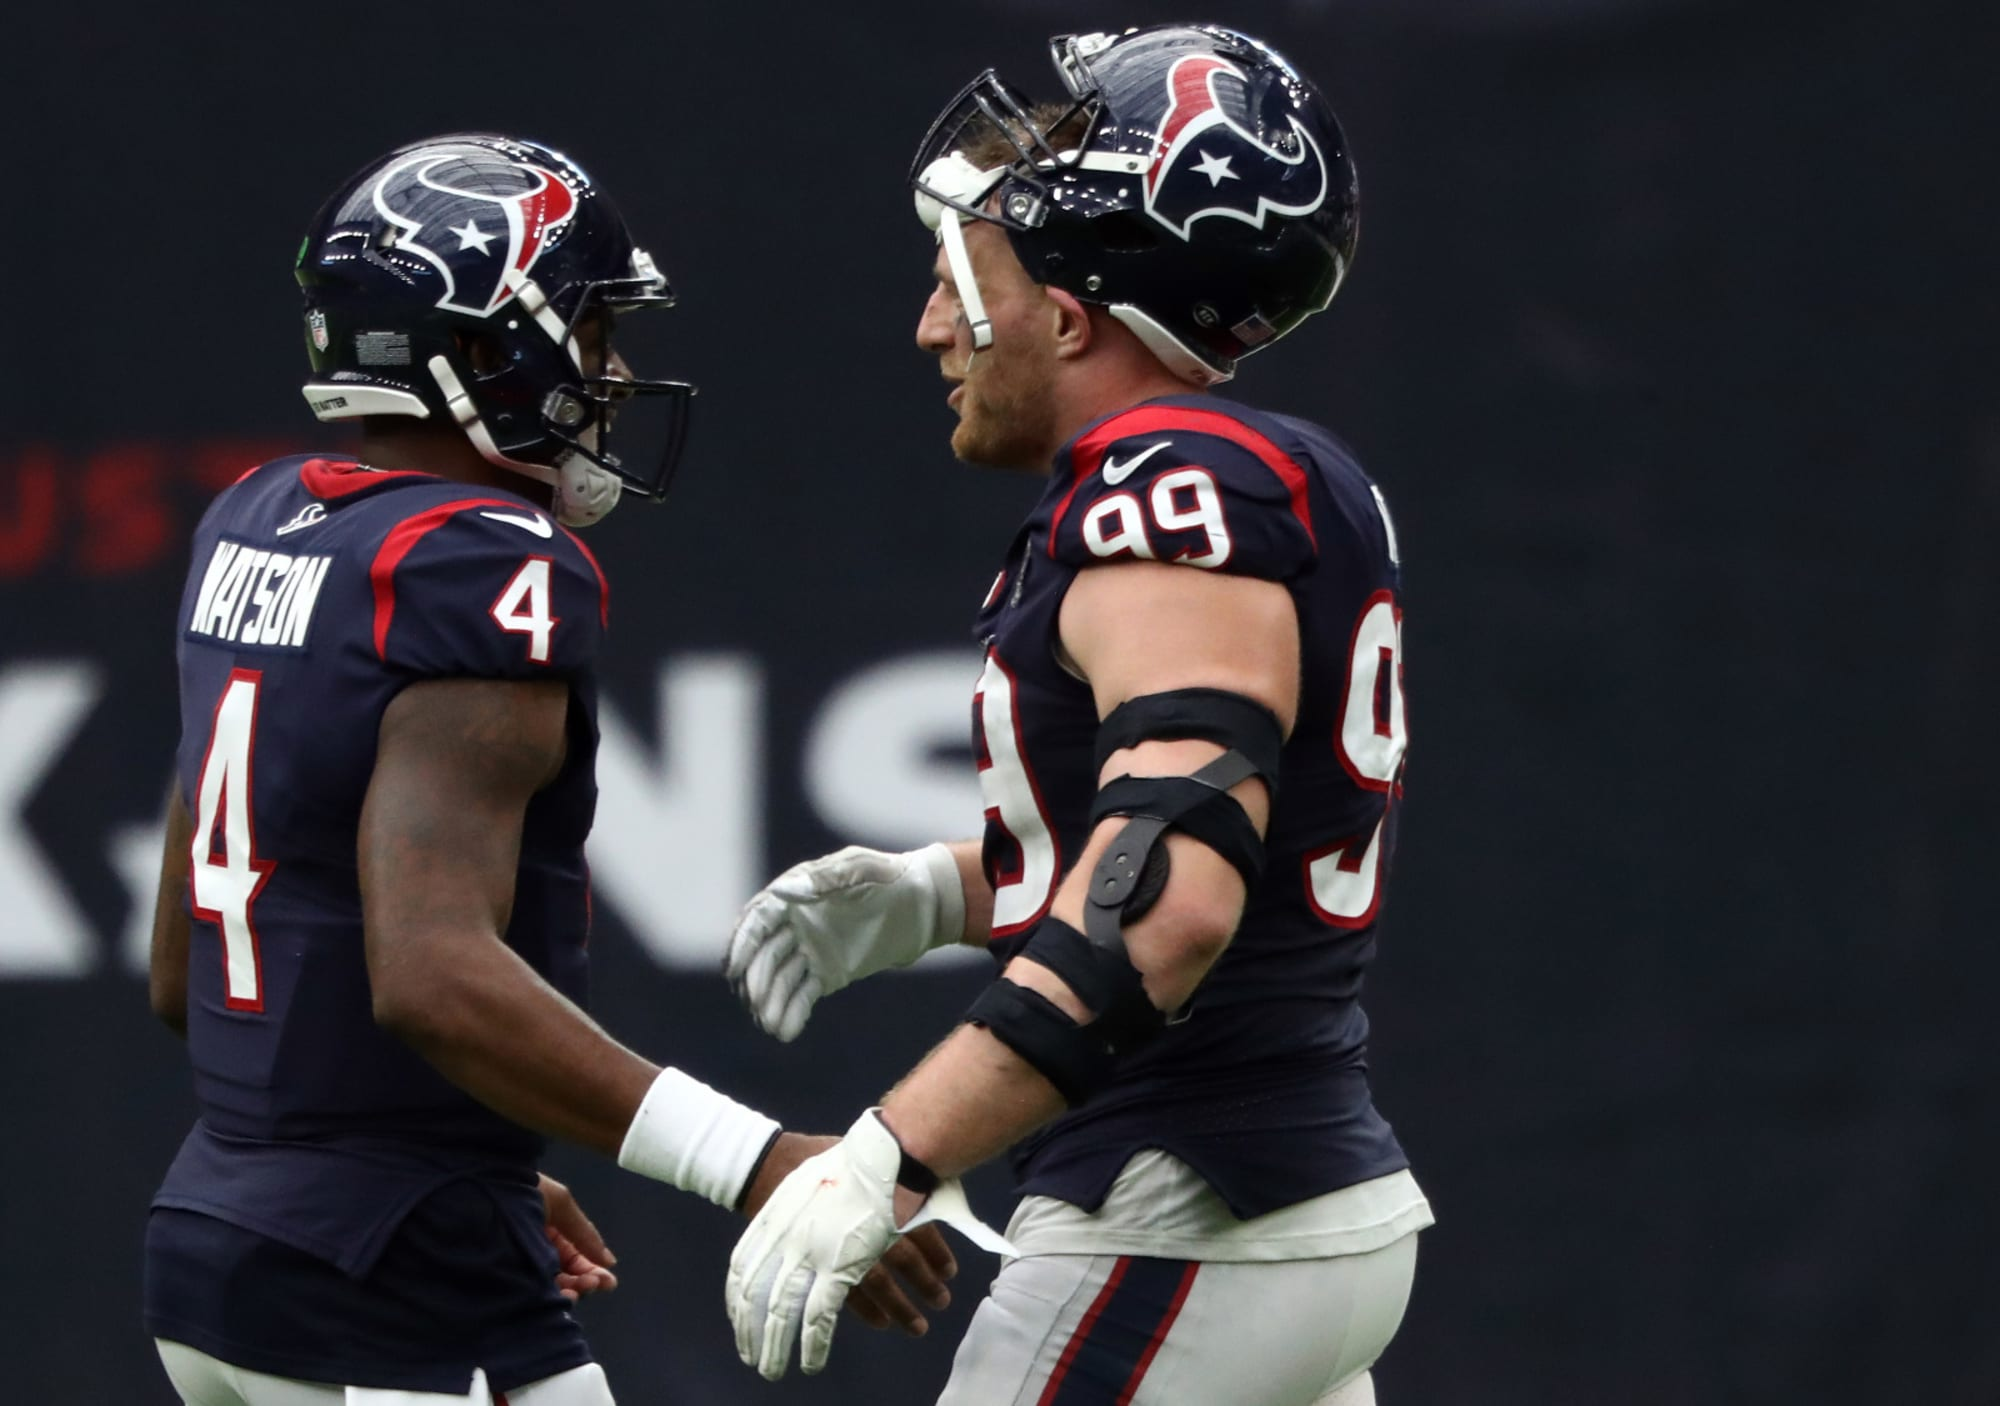 J.J. Watt's postgame reaction to blowout loss will fuel trade rumors (Video)